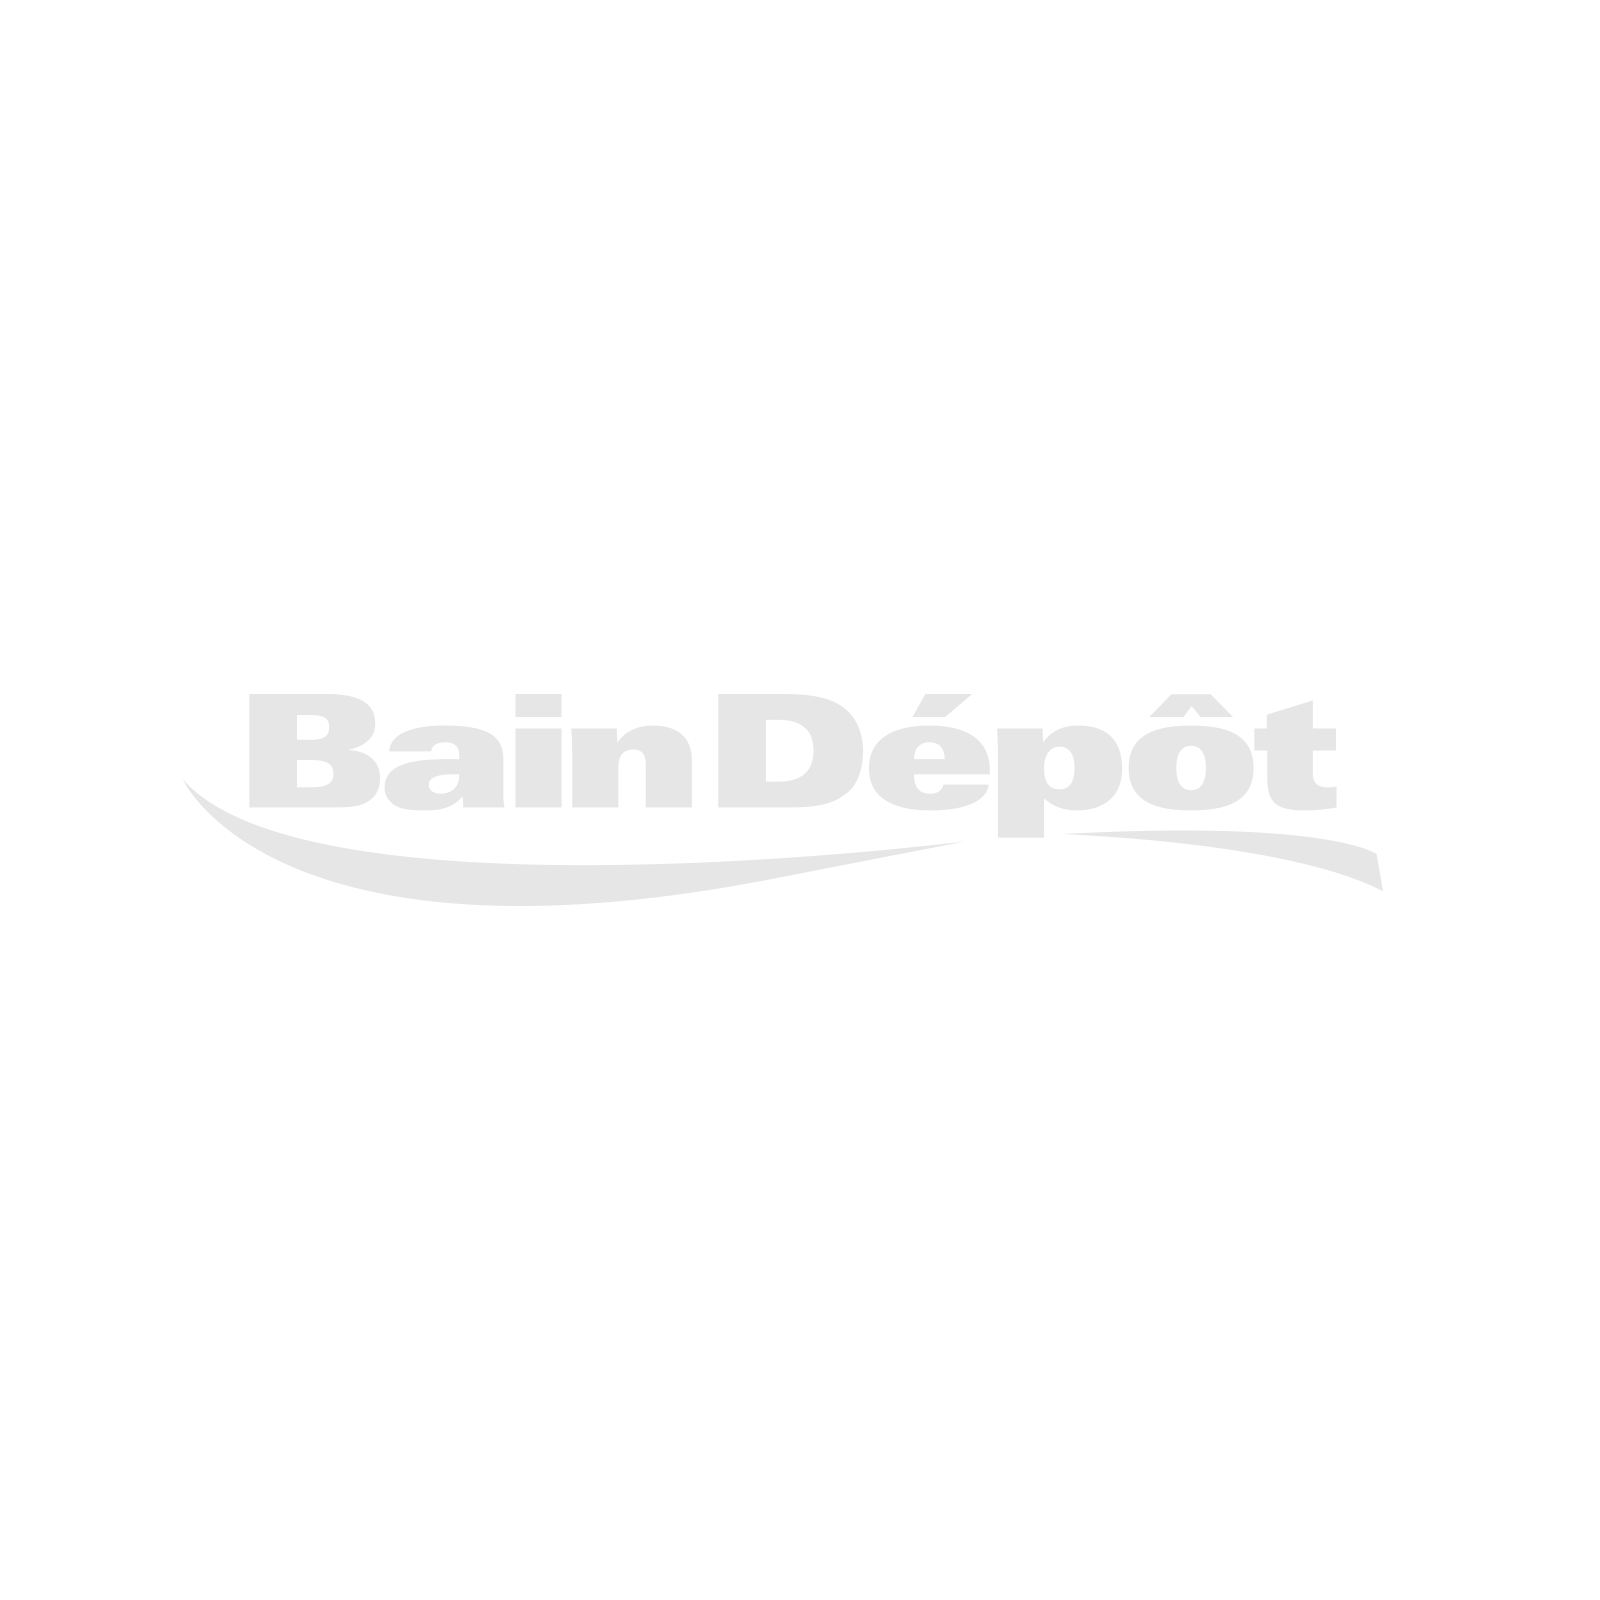 DUO JOH two-piece toilet and white freestanding toilet paper holder